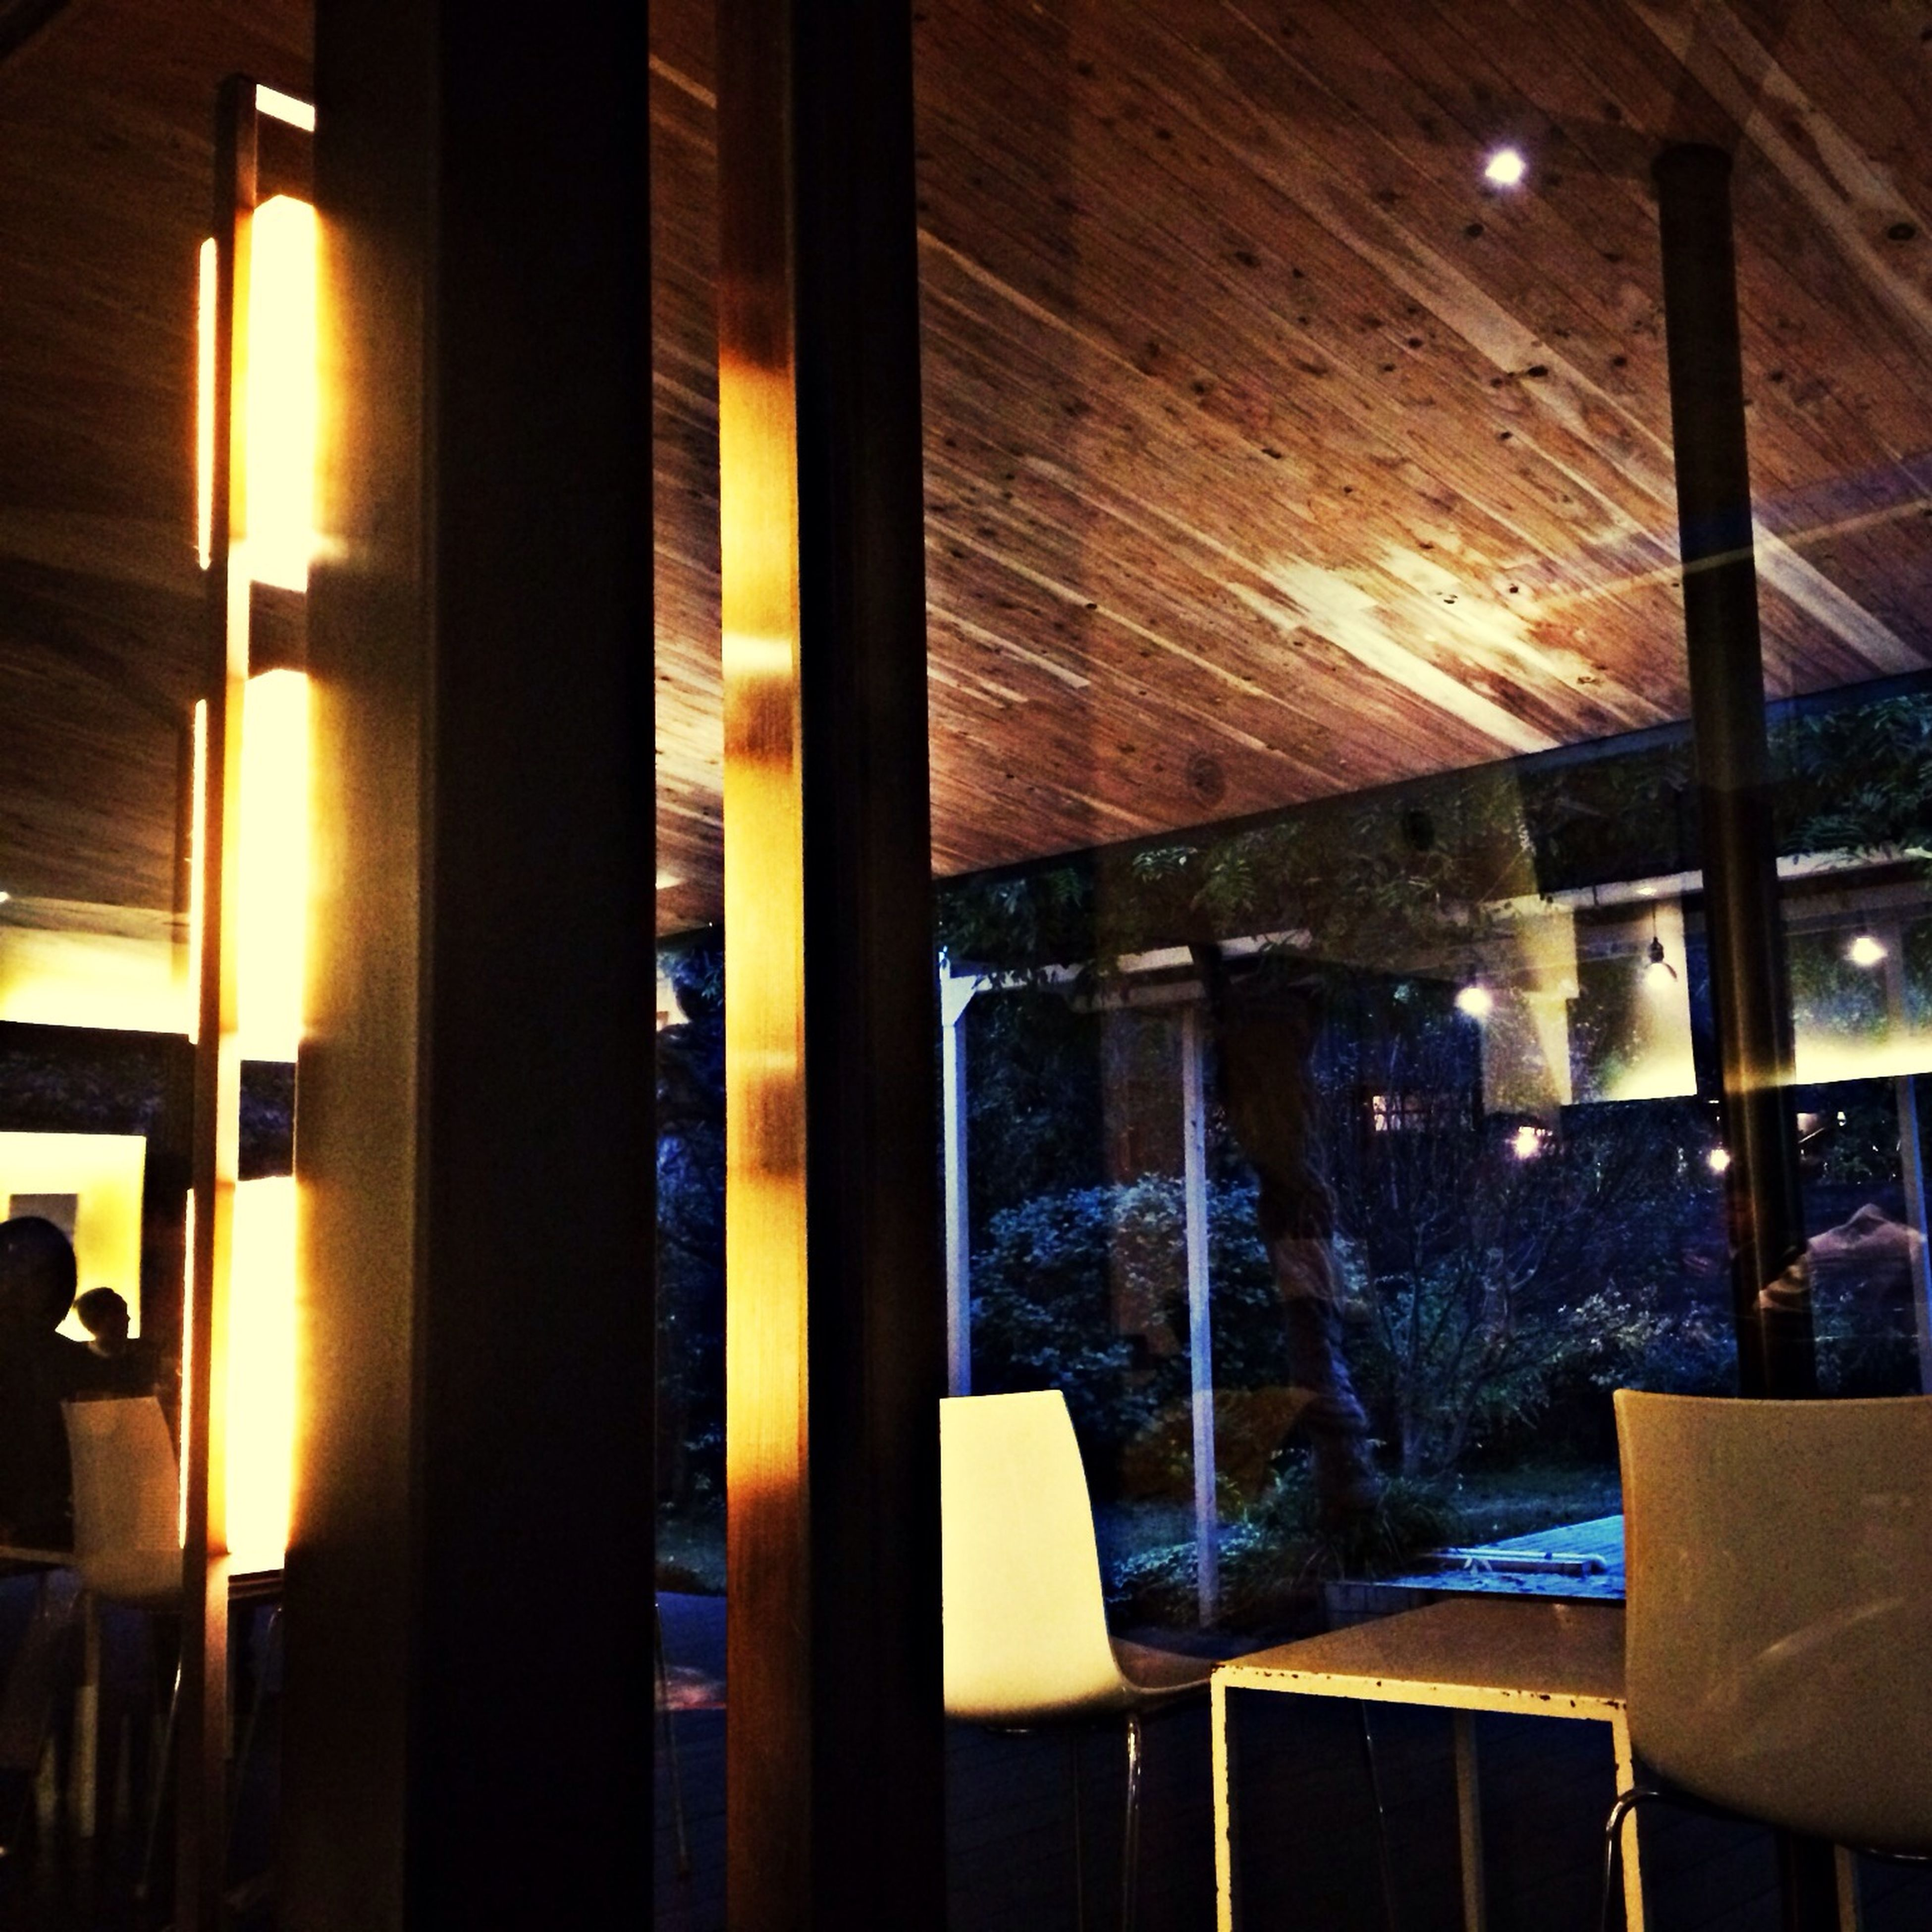 indoors, illuminated, lighting equipment, window, architecture, chair, home interior, interior, ceiling, built structure, absence, glass - material, light - natural phenomenon, restaurant, table, glowing, night, room, empty, architectural column